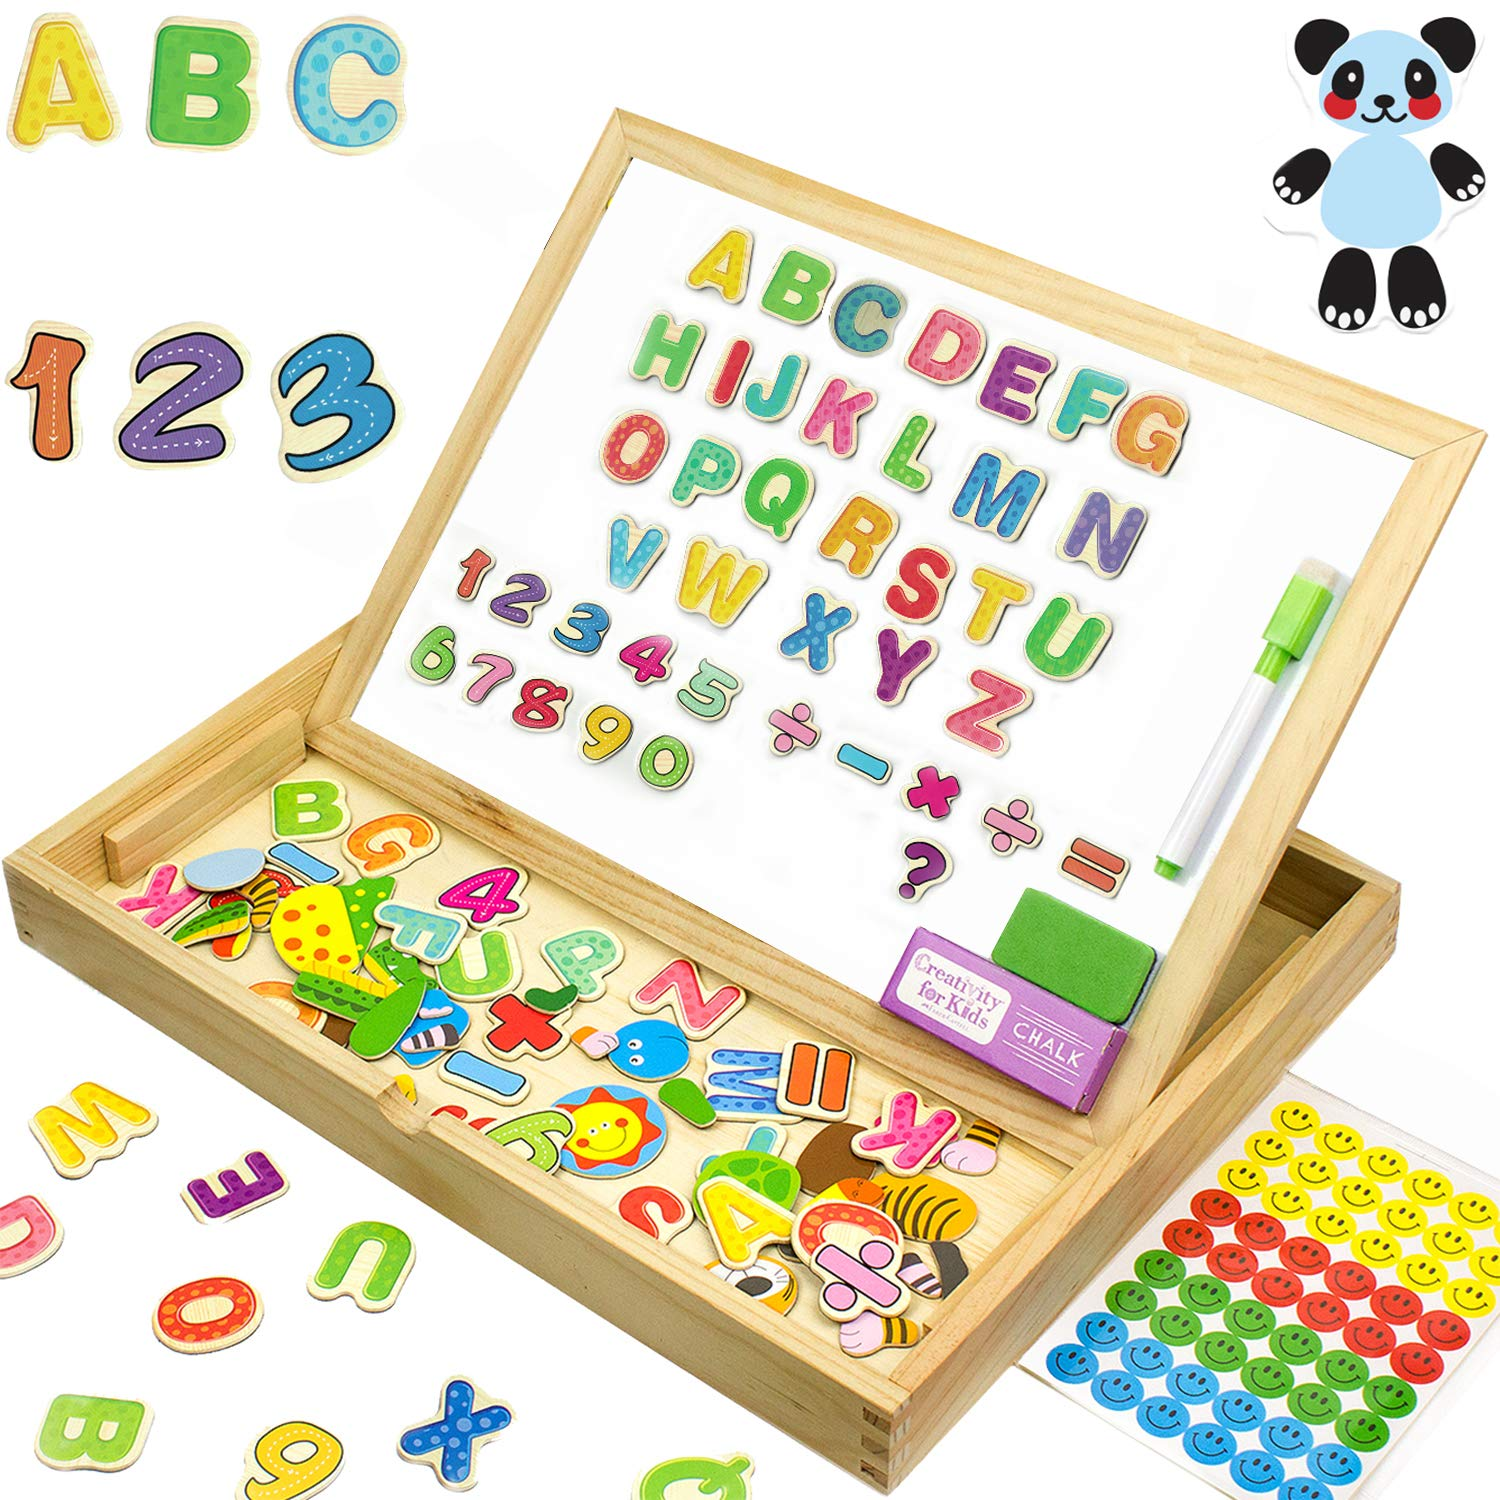 JQP XL Wooden Magnetic Letters Numbers Animals Set |16'' x 12'' inch | 151 Pcs | Whiteboard and Blackboard Writing Reading Drawing Whiteboard Blackboard | Learning Wooden Puzzle | 3 to 6 Years Old by JQP